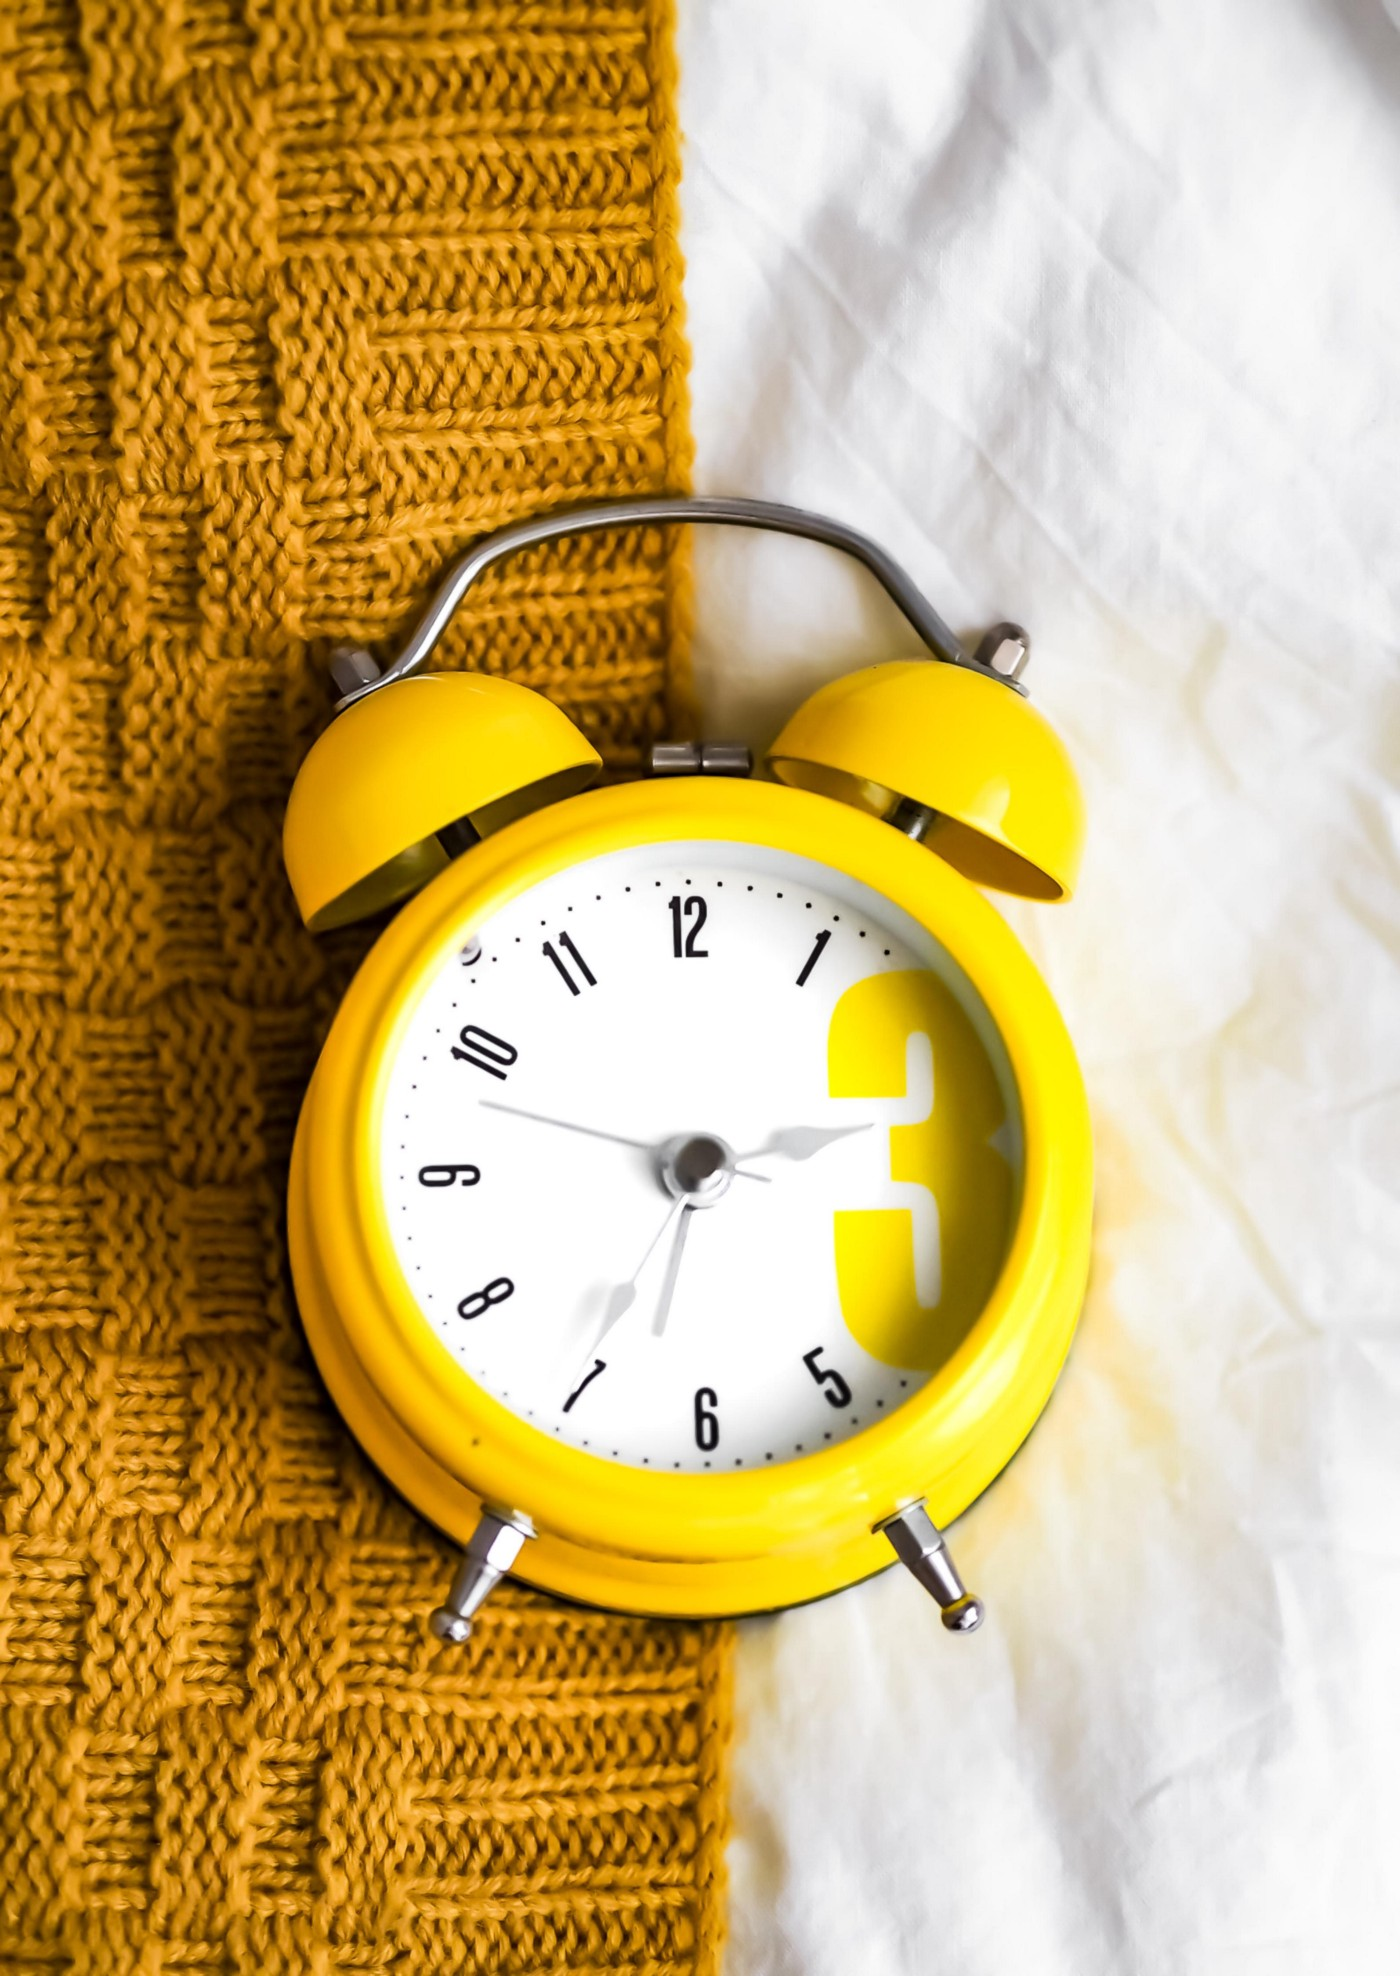 A yellow clock.